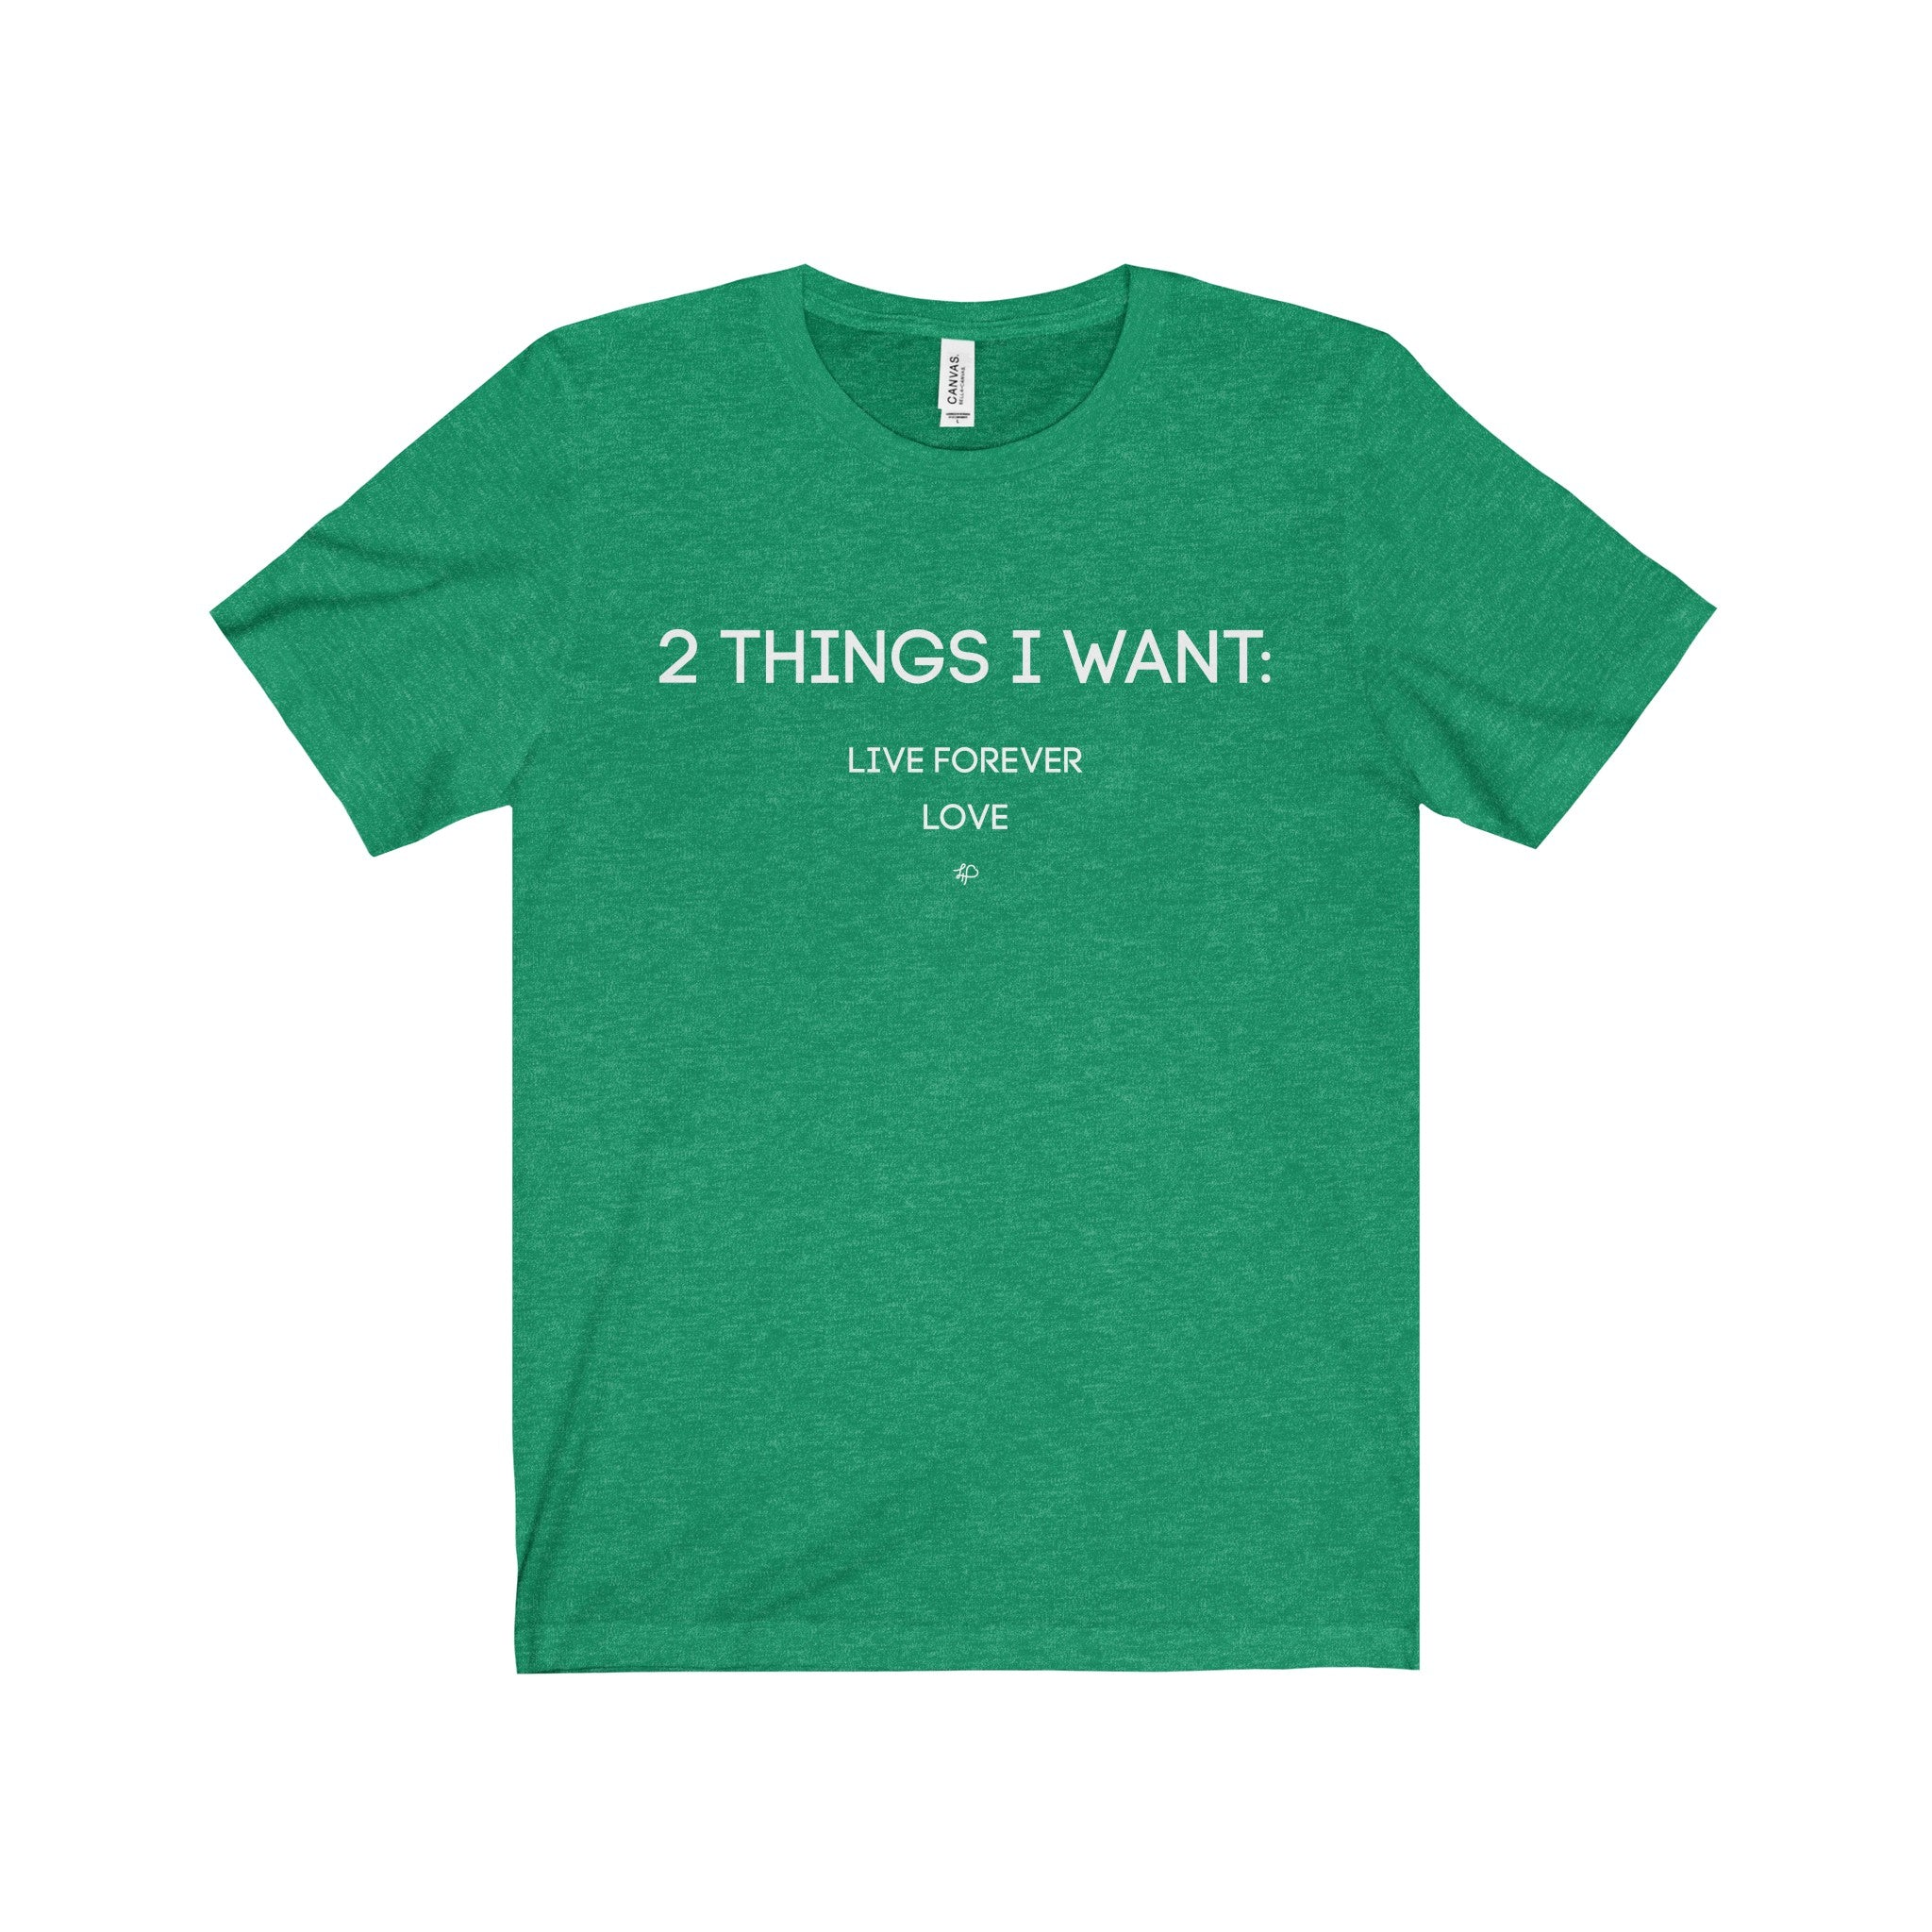 2 Things I Want: Tee